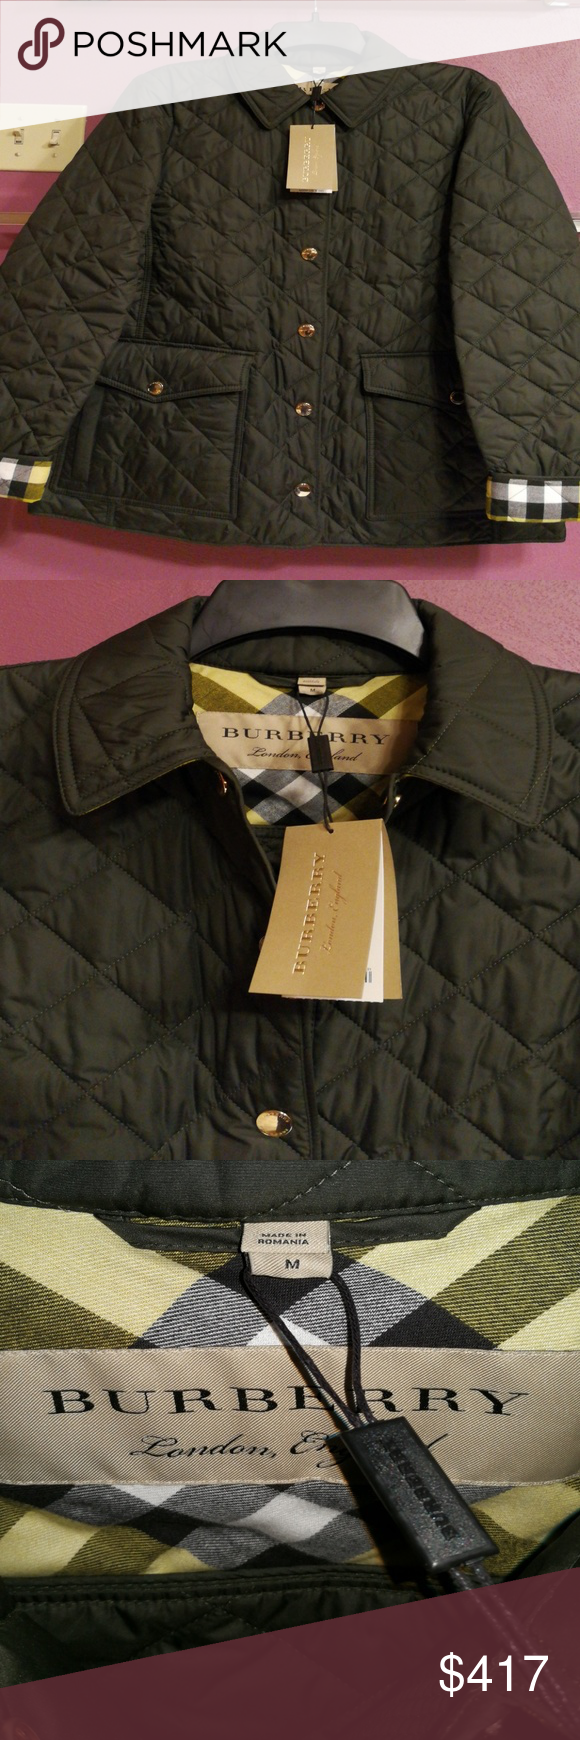 Burberry Westbridge Quilt Jacket Military Green This Jacket Is Relaxed Fit So It Runs Large Burberry Jackets Fashion Clothes Design Fashion Design